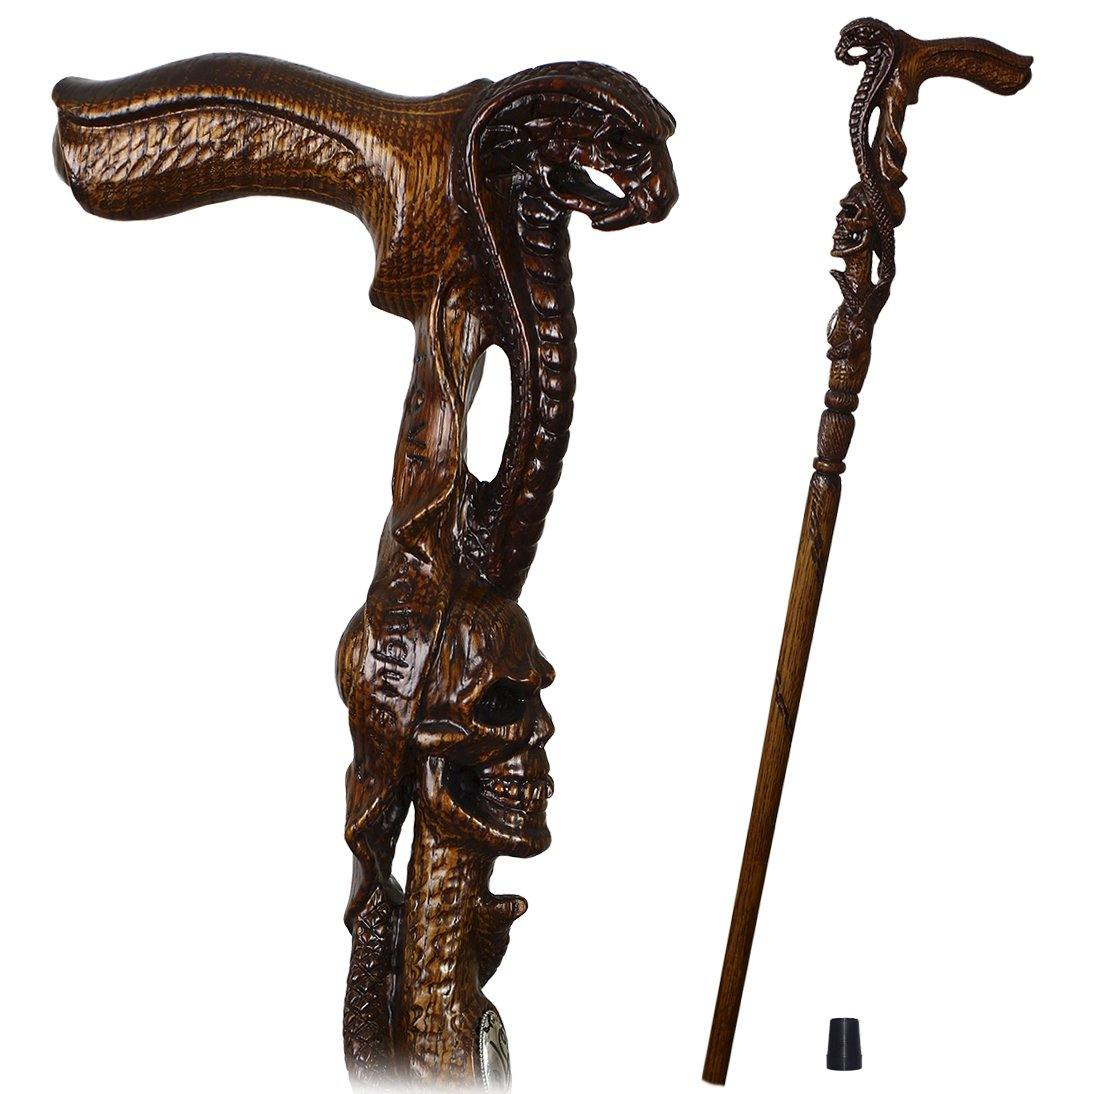 COBRA Snake with SKULL Cane Walking Stick Dark Wooden - GC-Artis Walking Sticks Canes